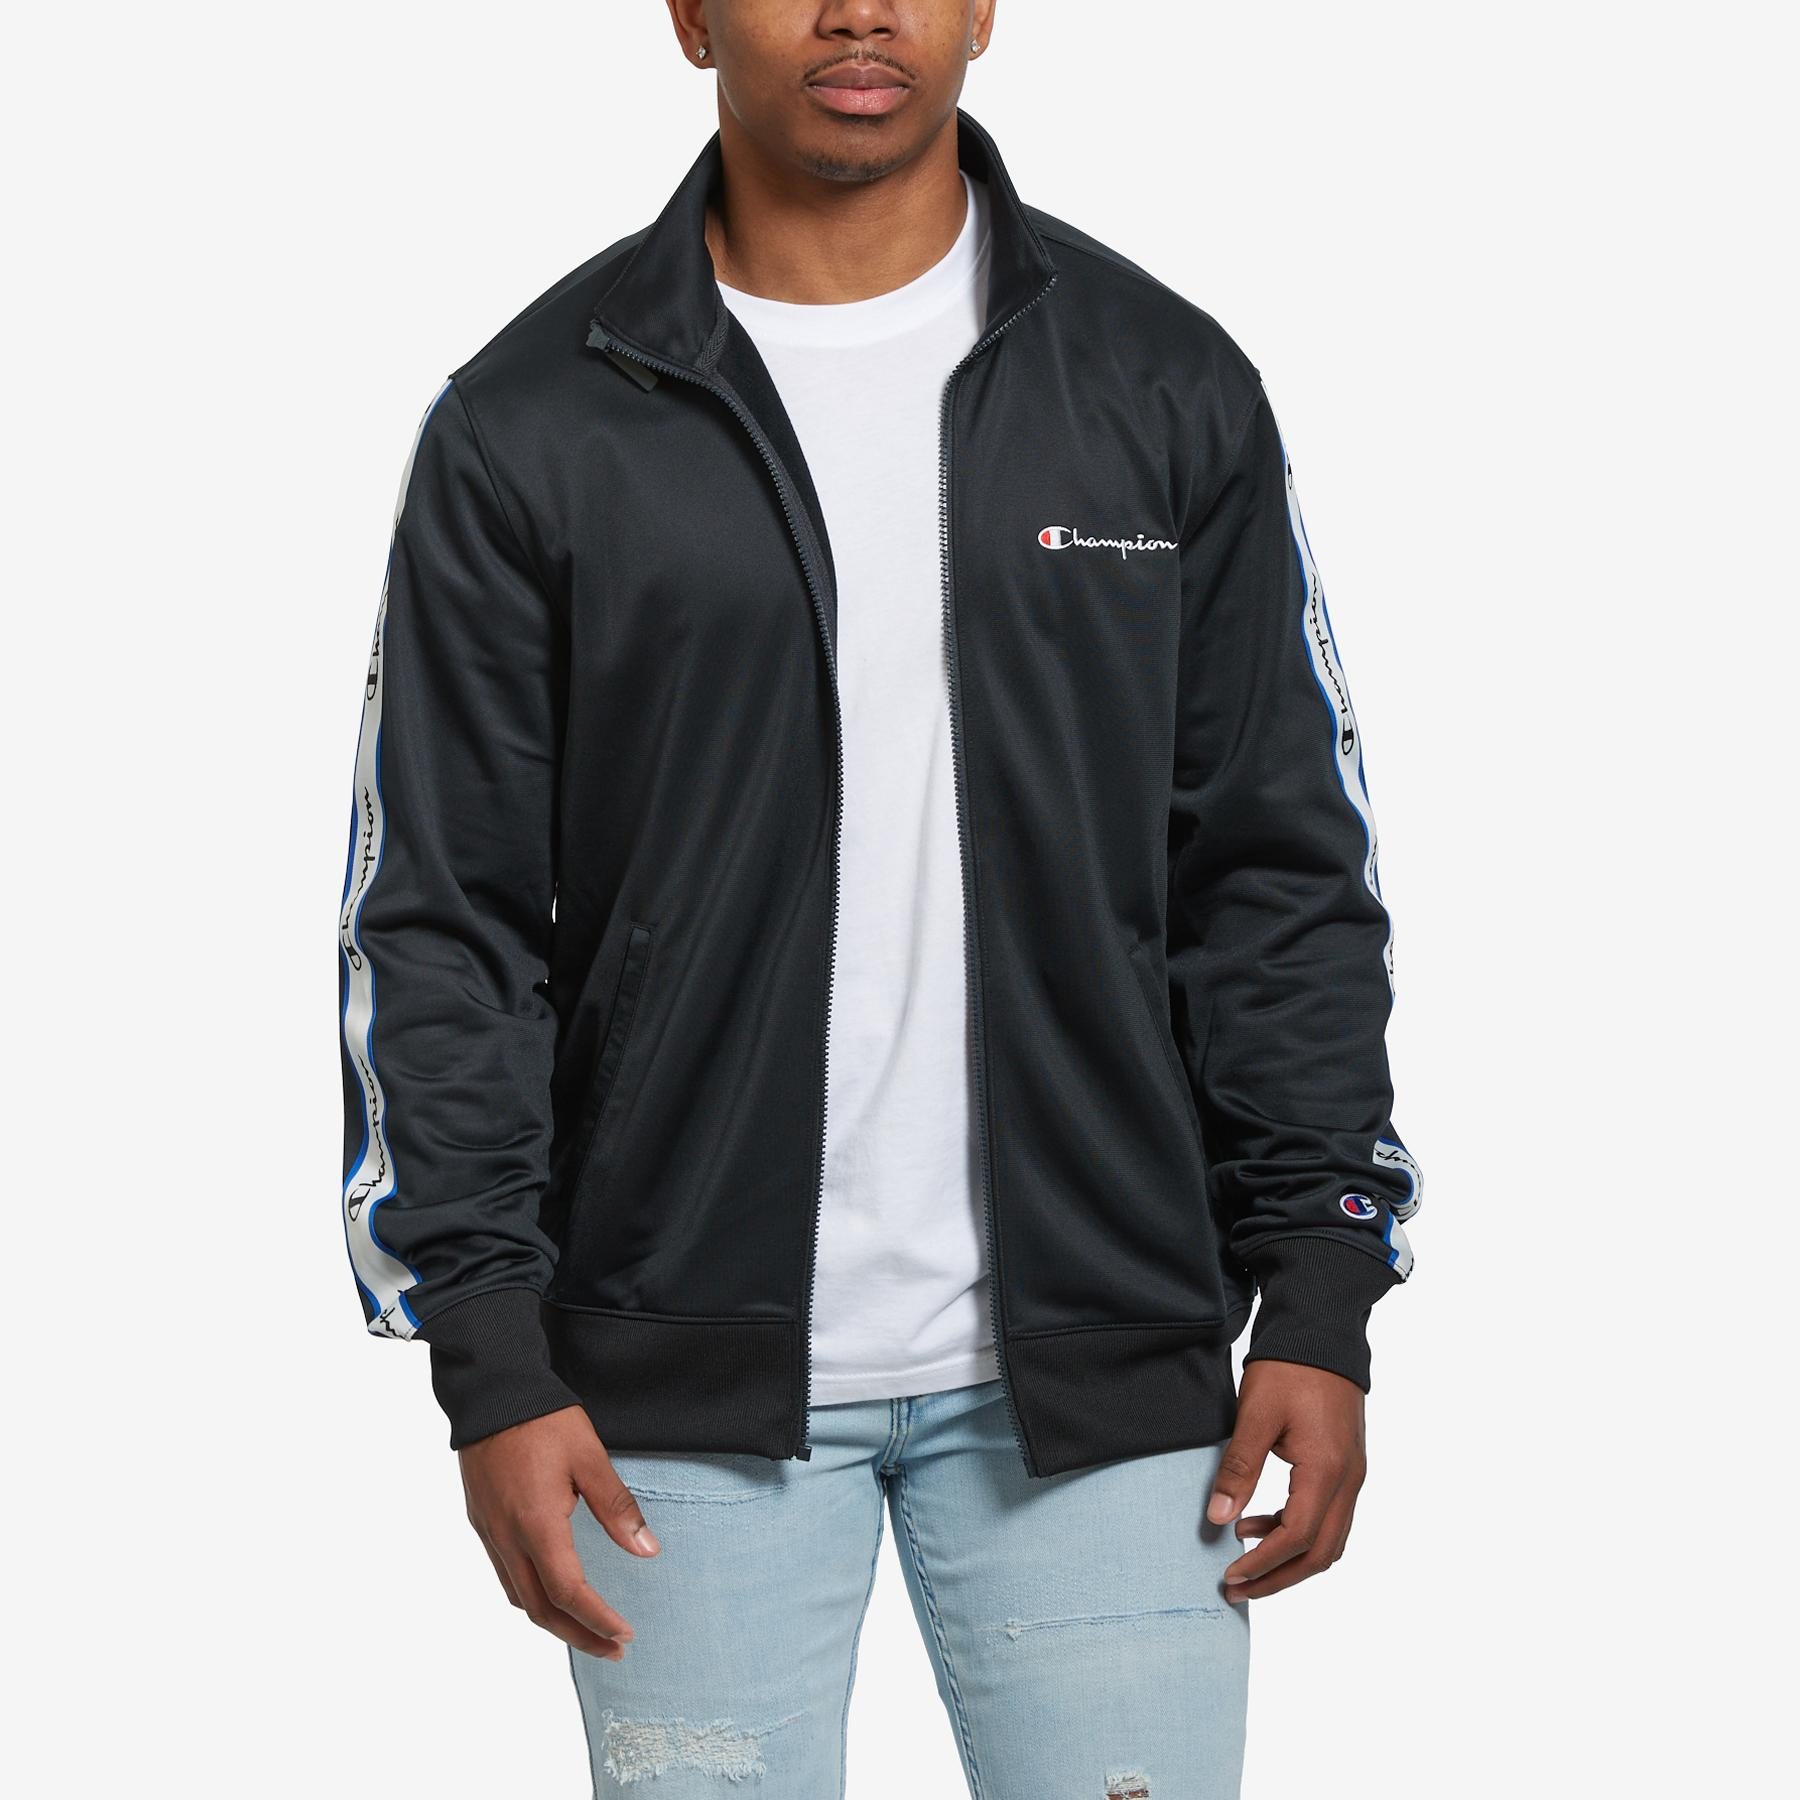 Men's Track Jacket, Vertical Logo